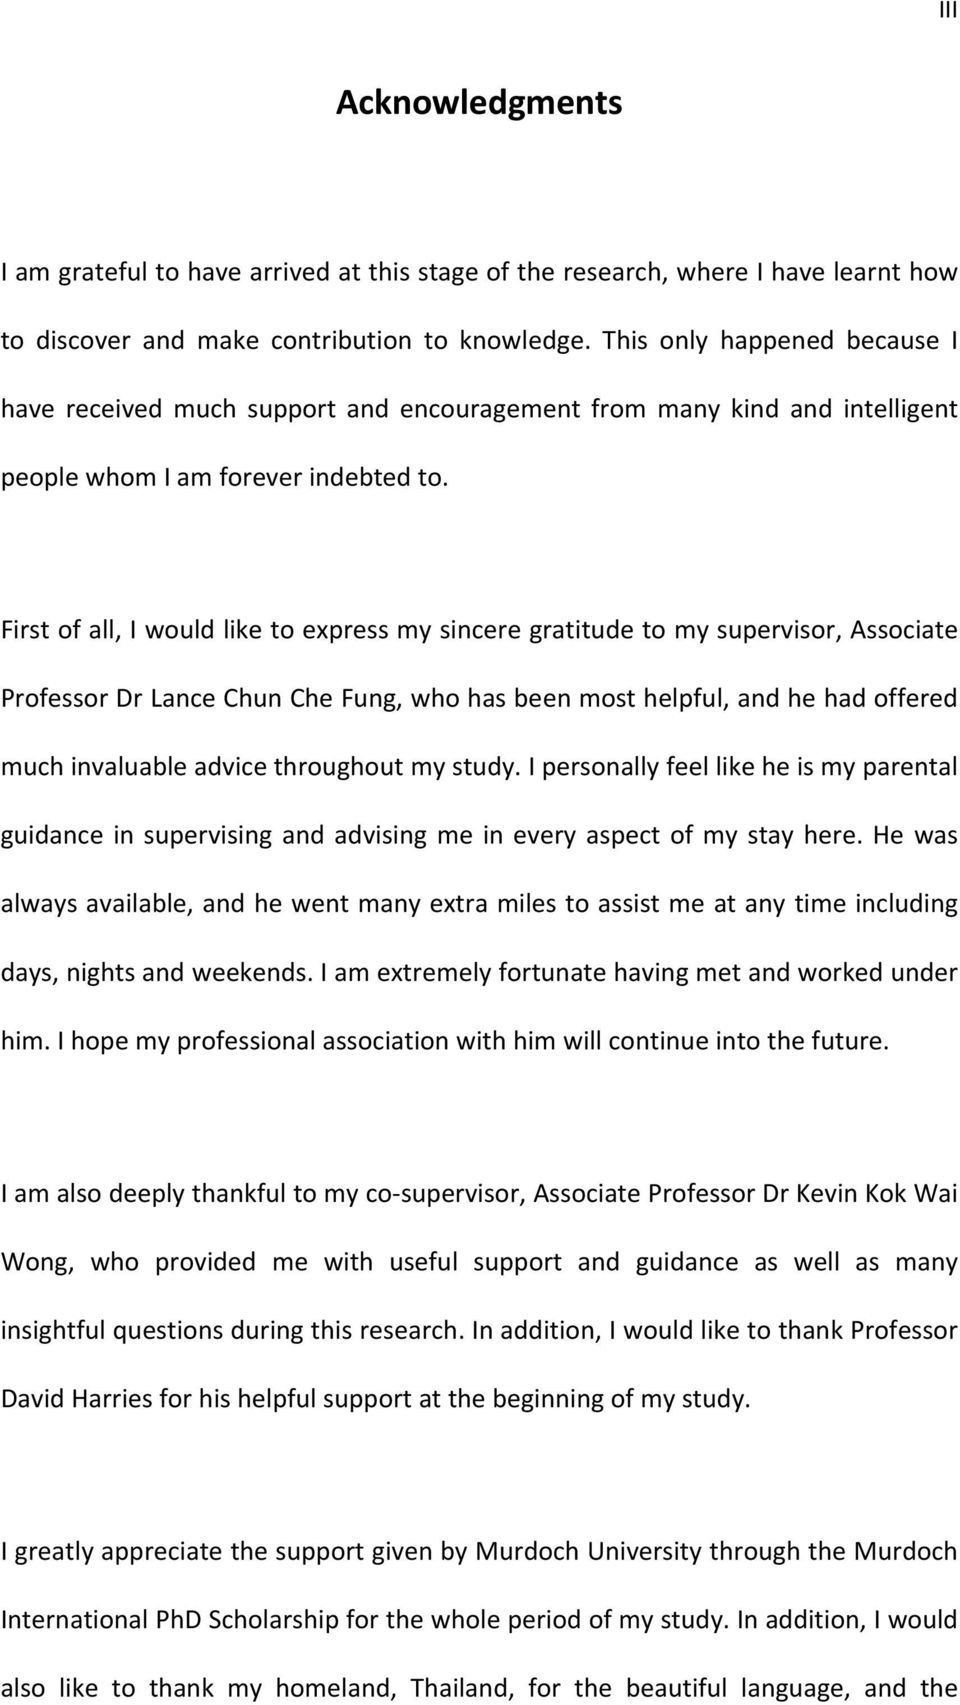 First of all, I would like to express my sincere gratitude to my supervisor, Associate Professor Dr Lance Chun Che Fung, who has been most helpful, and he had offered much invaluable advice